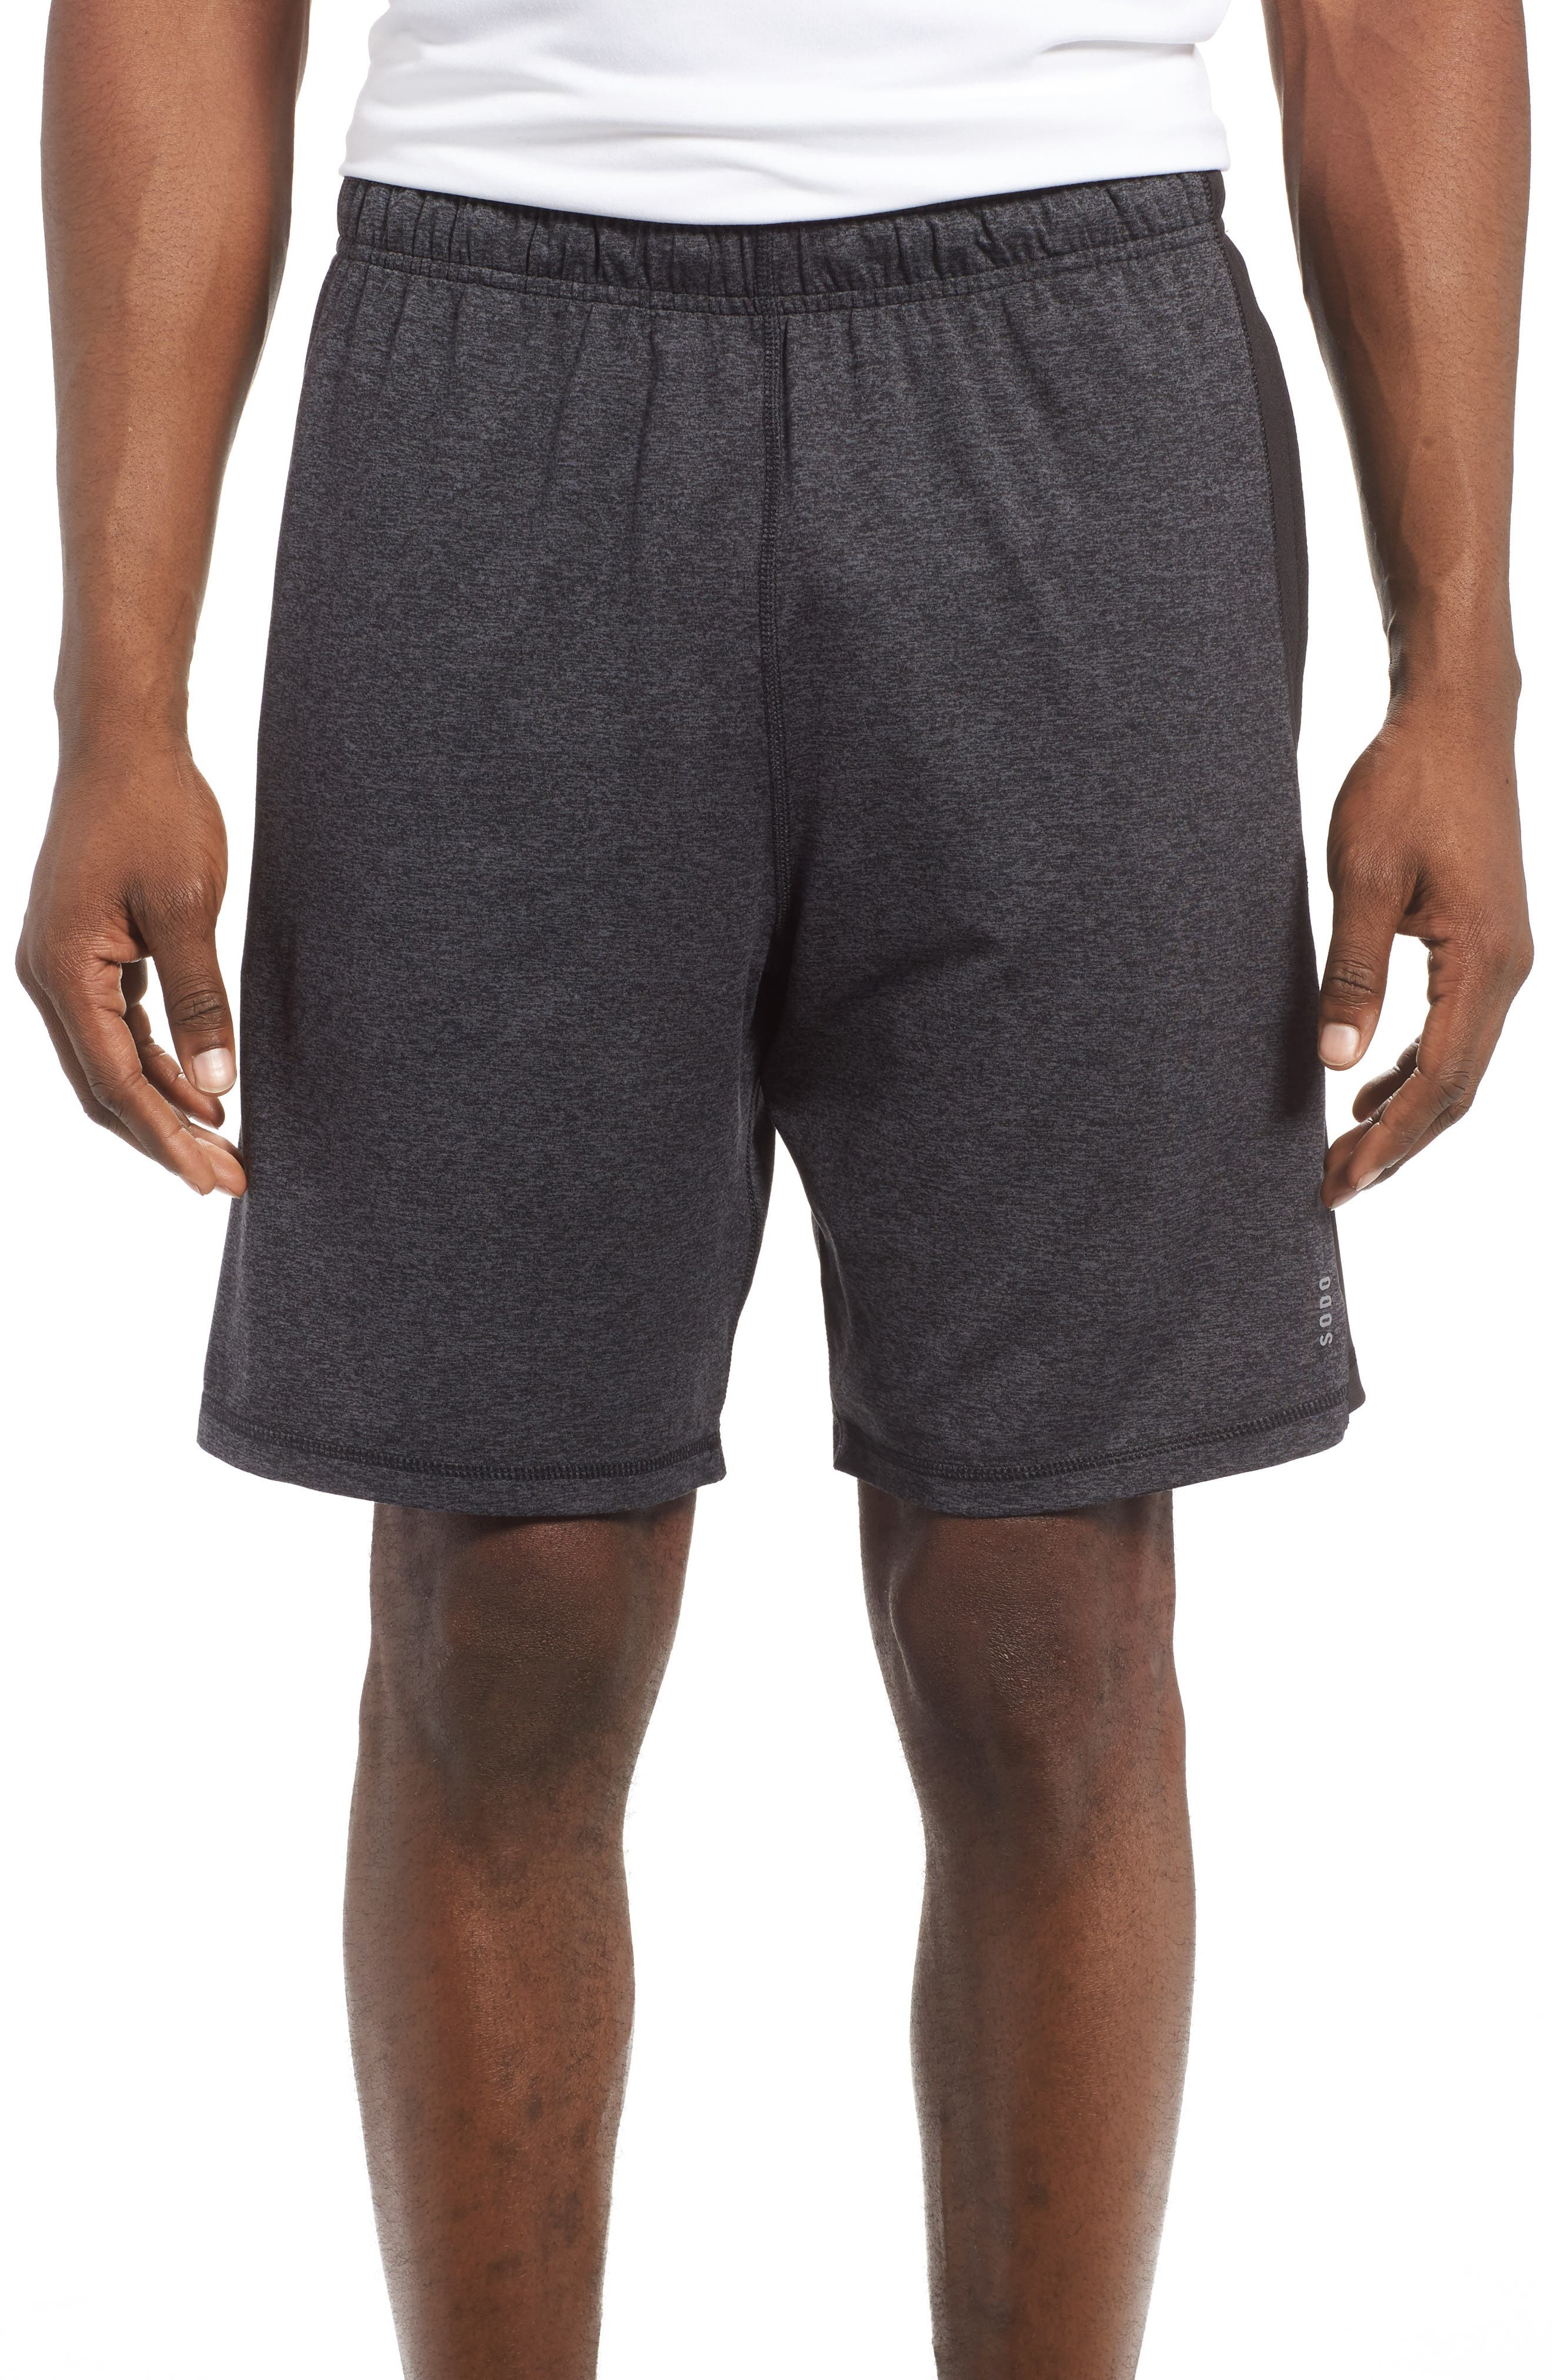 'Go To' Moisture Wicking Stretch Shorts,                             Main thumbnail 1, color,                             HEATHER CHARCOAL/ BLACK